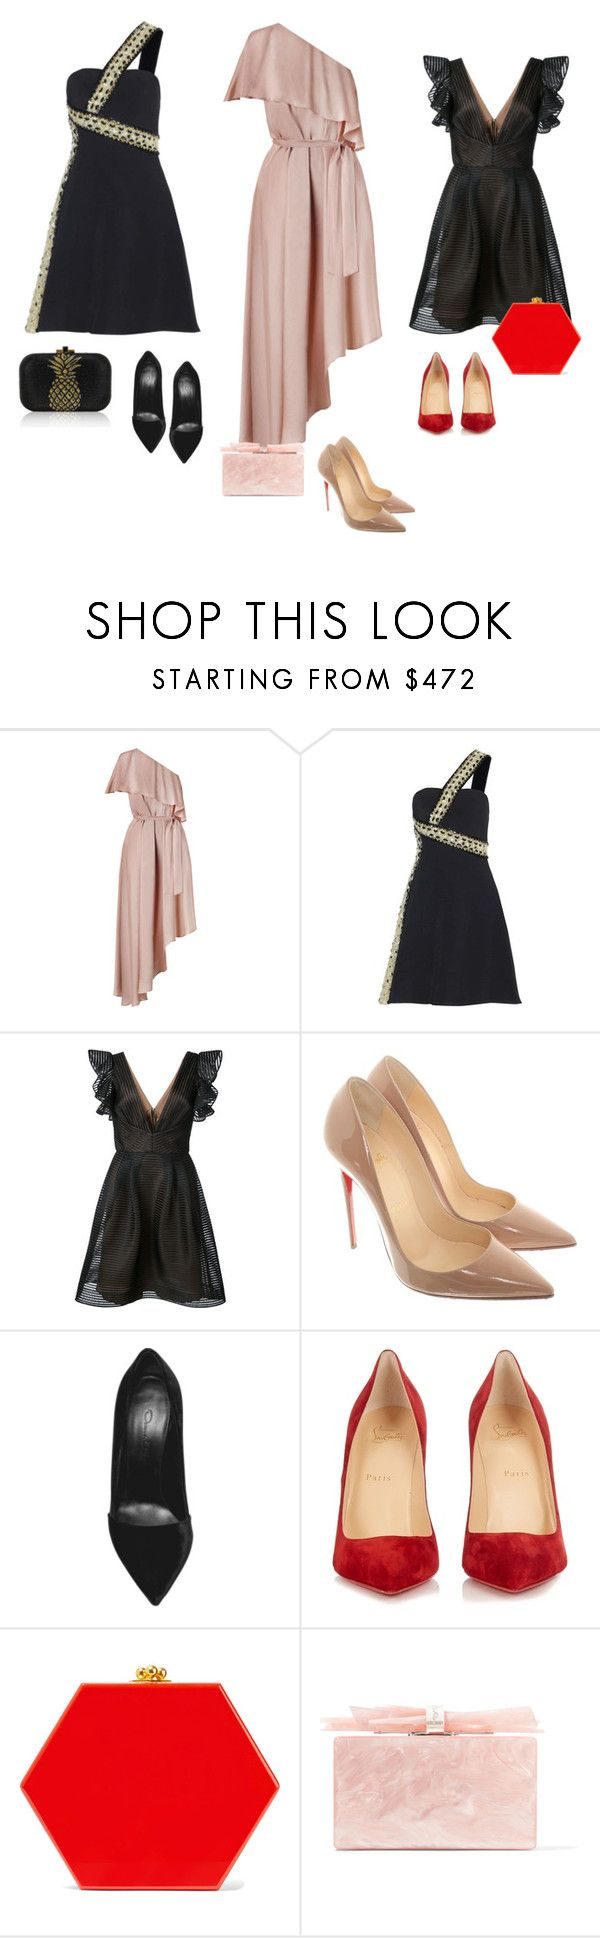 """Three dresses one night"" by audrey-balt on Polyvore featuring Zimmermann, Zuhair Murad, Notte by Marchesa, Christian Louboutin, Edie Parker and Judith Leiber"